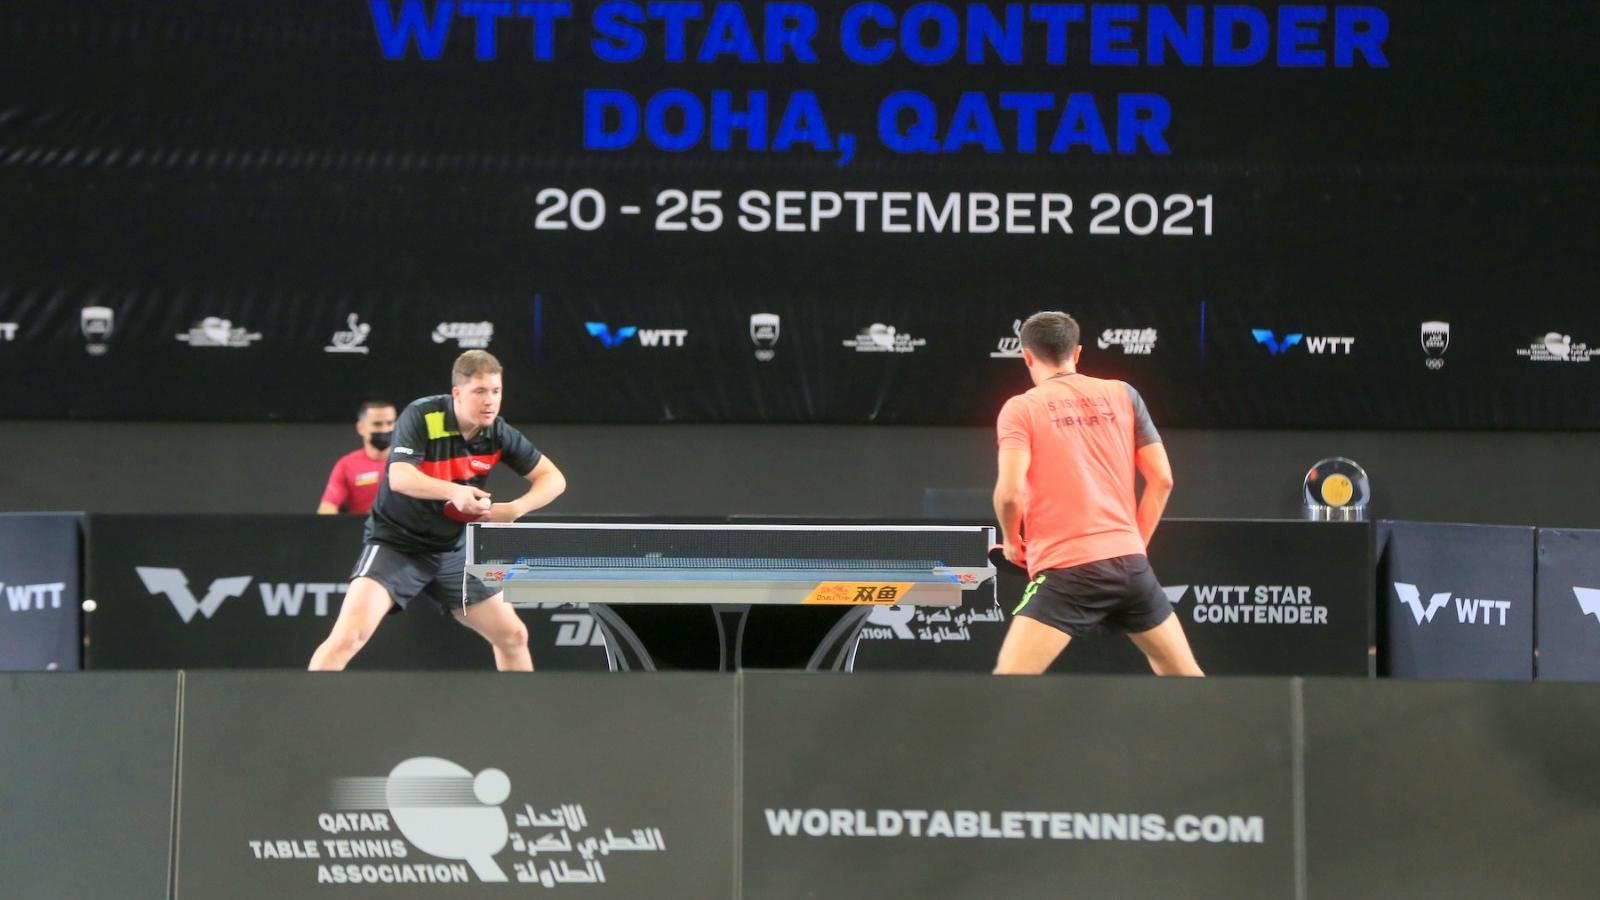 WTT Star Contender Championship returns to Doha for second time; tournament kicks off today